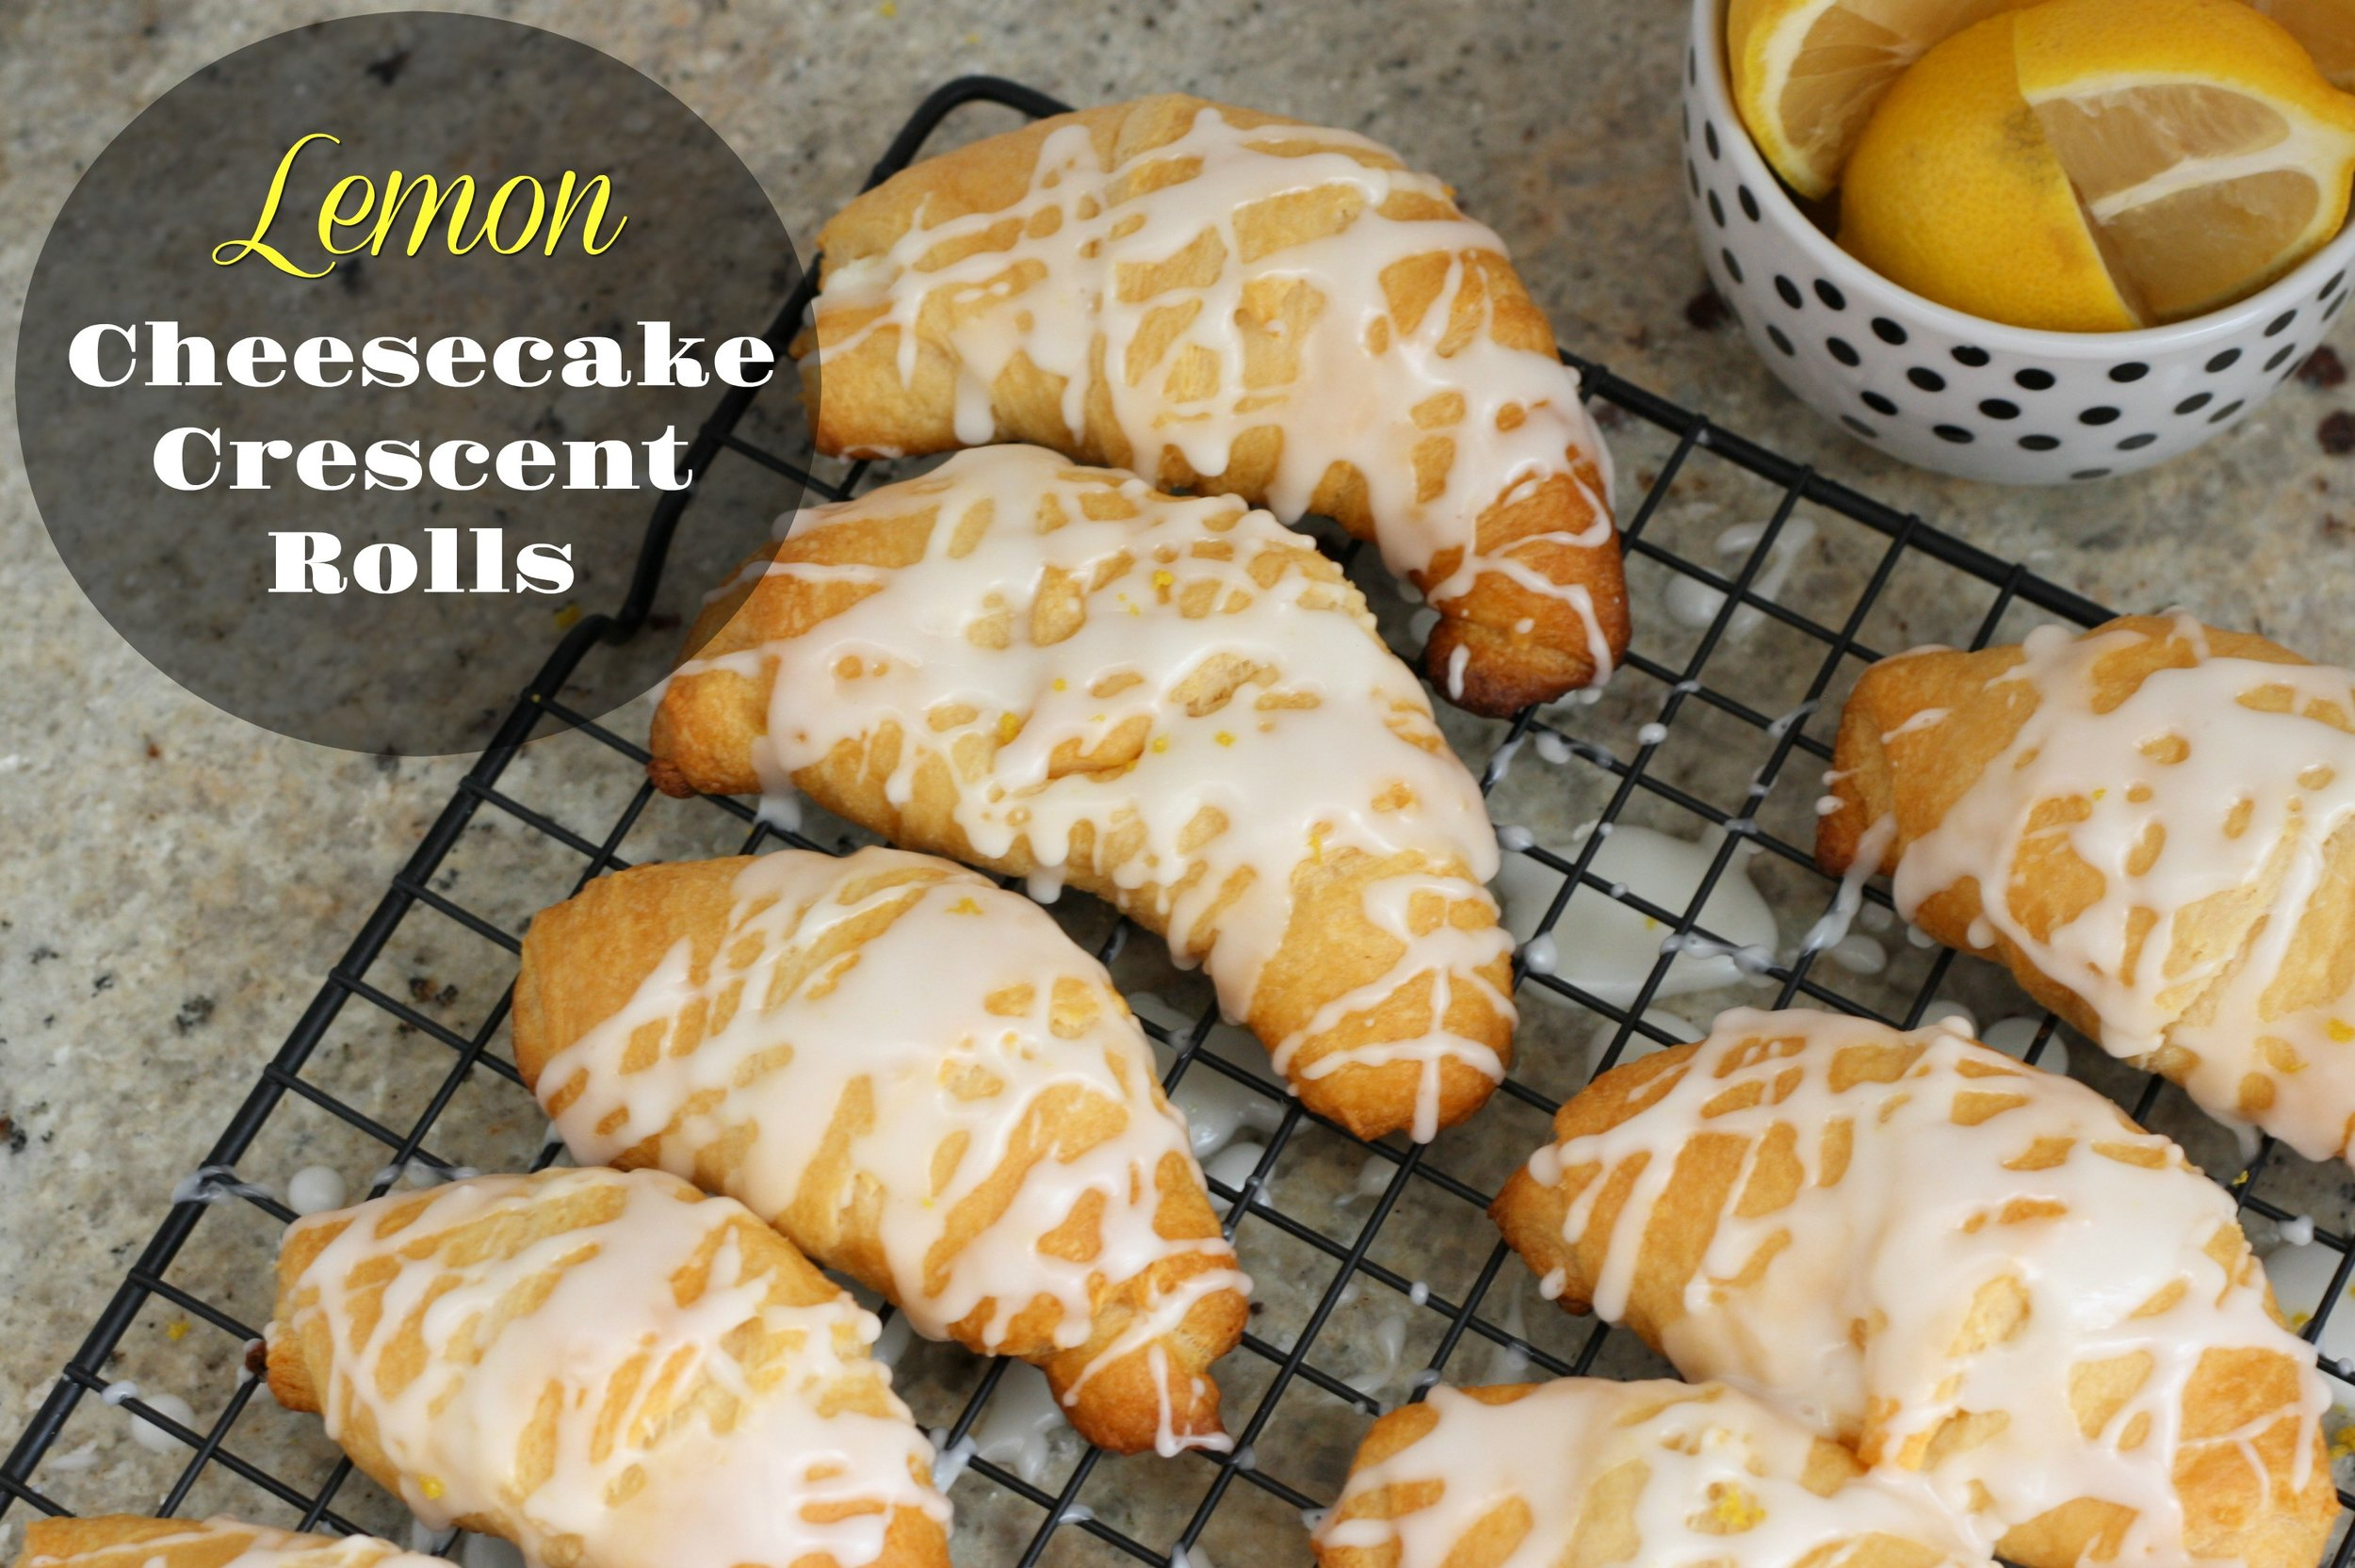 Lemon Cheesecake Crescent Rolls2-text.jpg